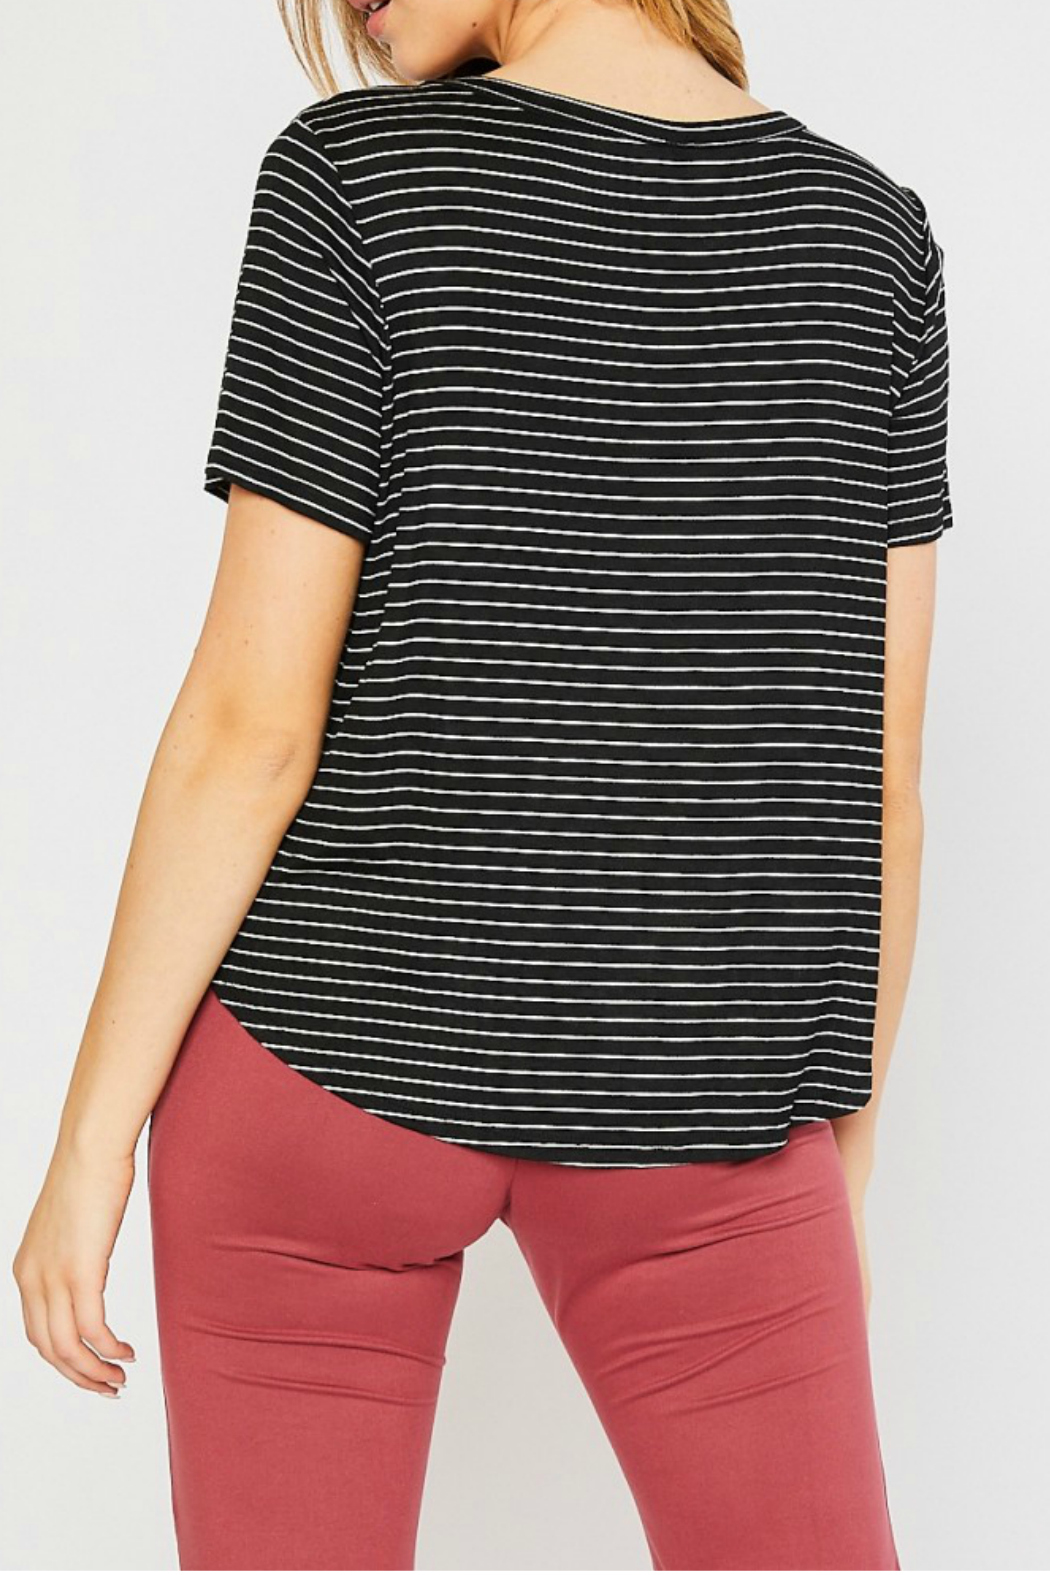 Mittoshop STRIPE ROUND NECK SHORT SLEEVE KNIT TOP - Front Full Image